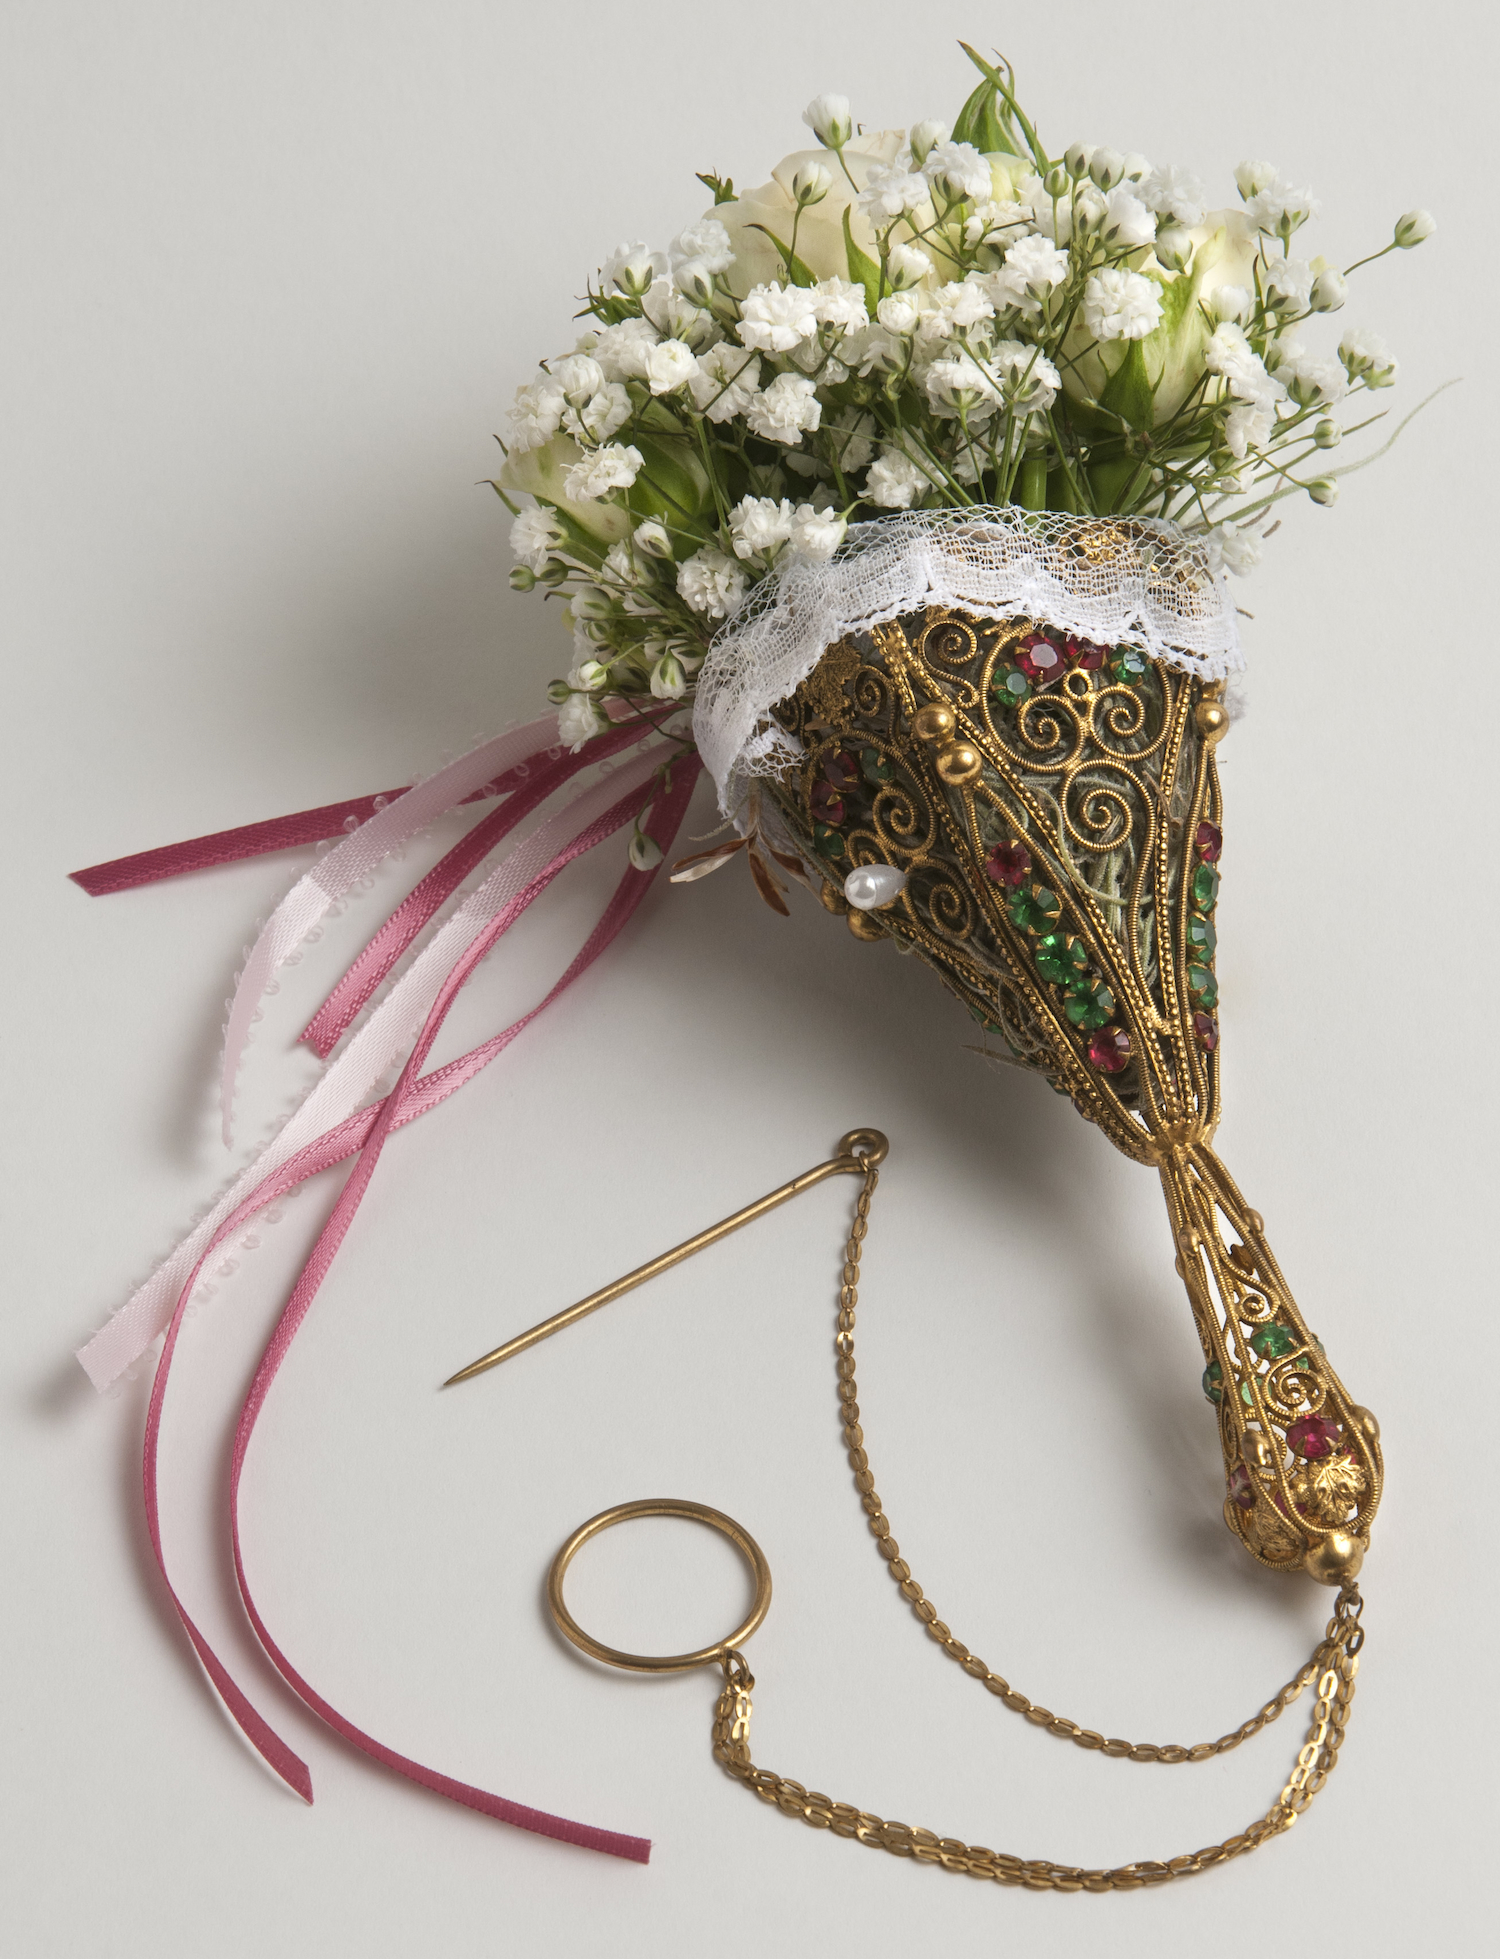 nosegay type of wedding bouquet with the celebrant angel